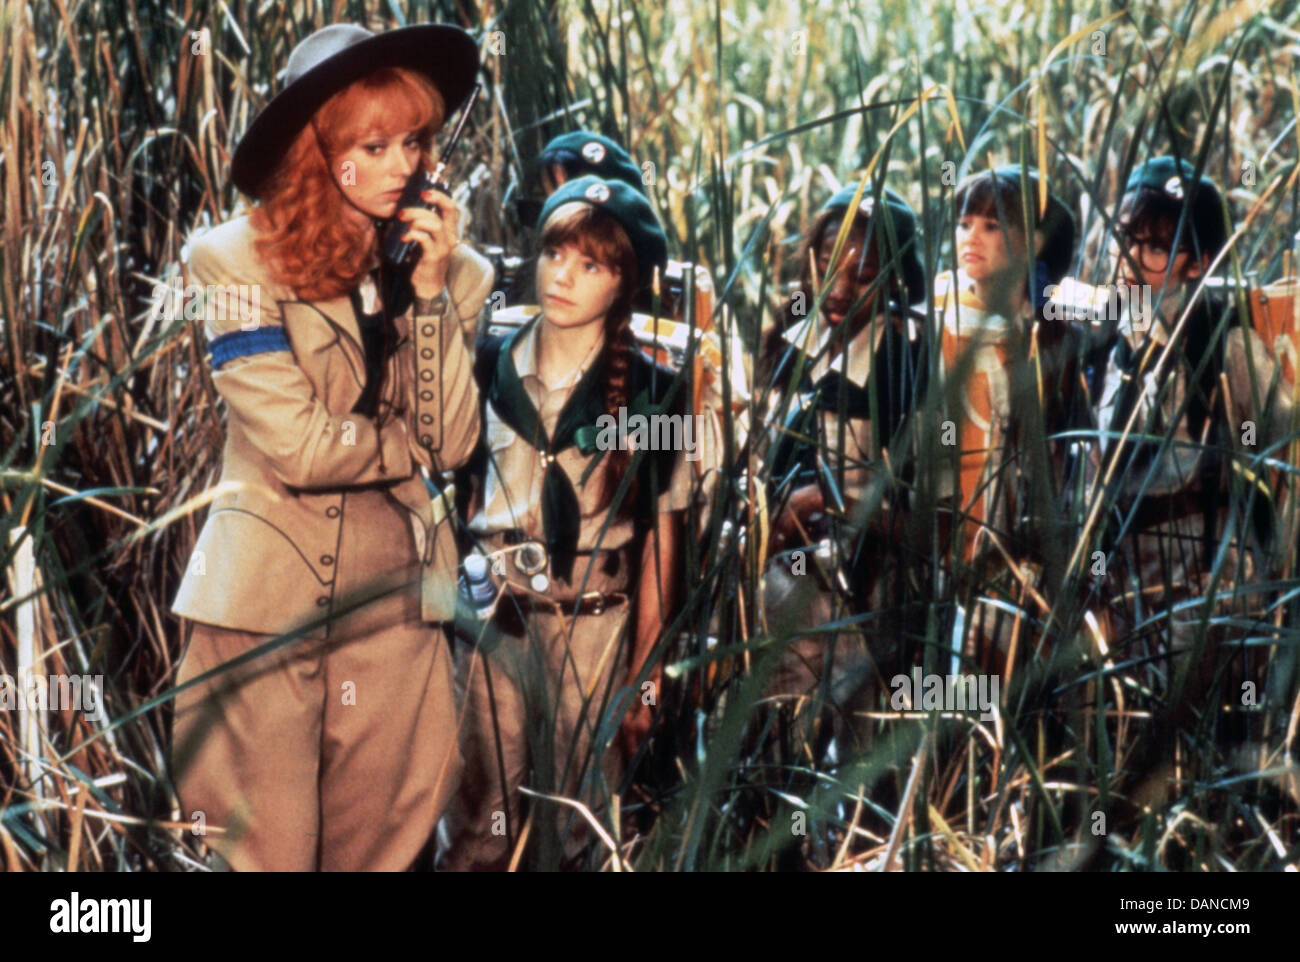 TROOP BEVERLY HILLS (1989) SHELLY LONG, JEFF KANEW (DIR) TBH 002 MOVIESTORE COLLECTION LTD - Stock Image